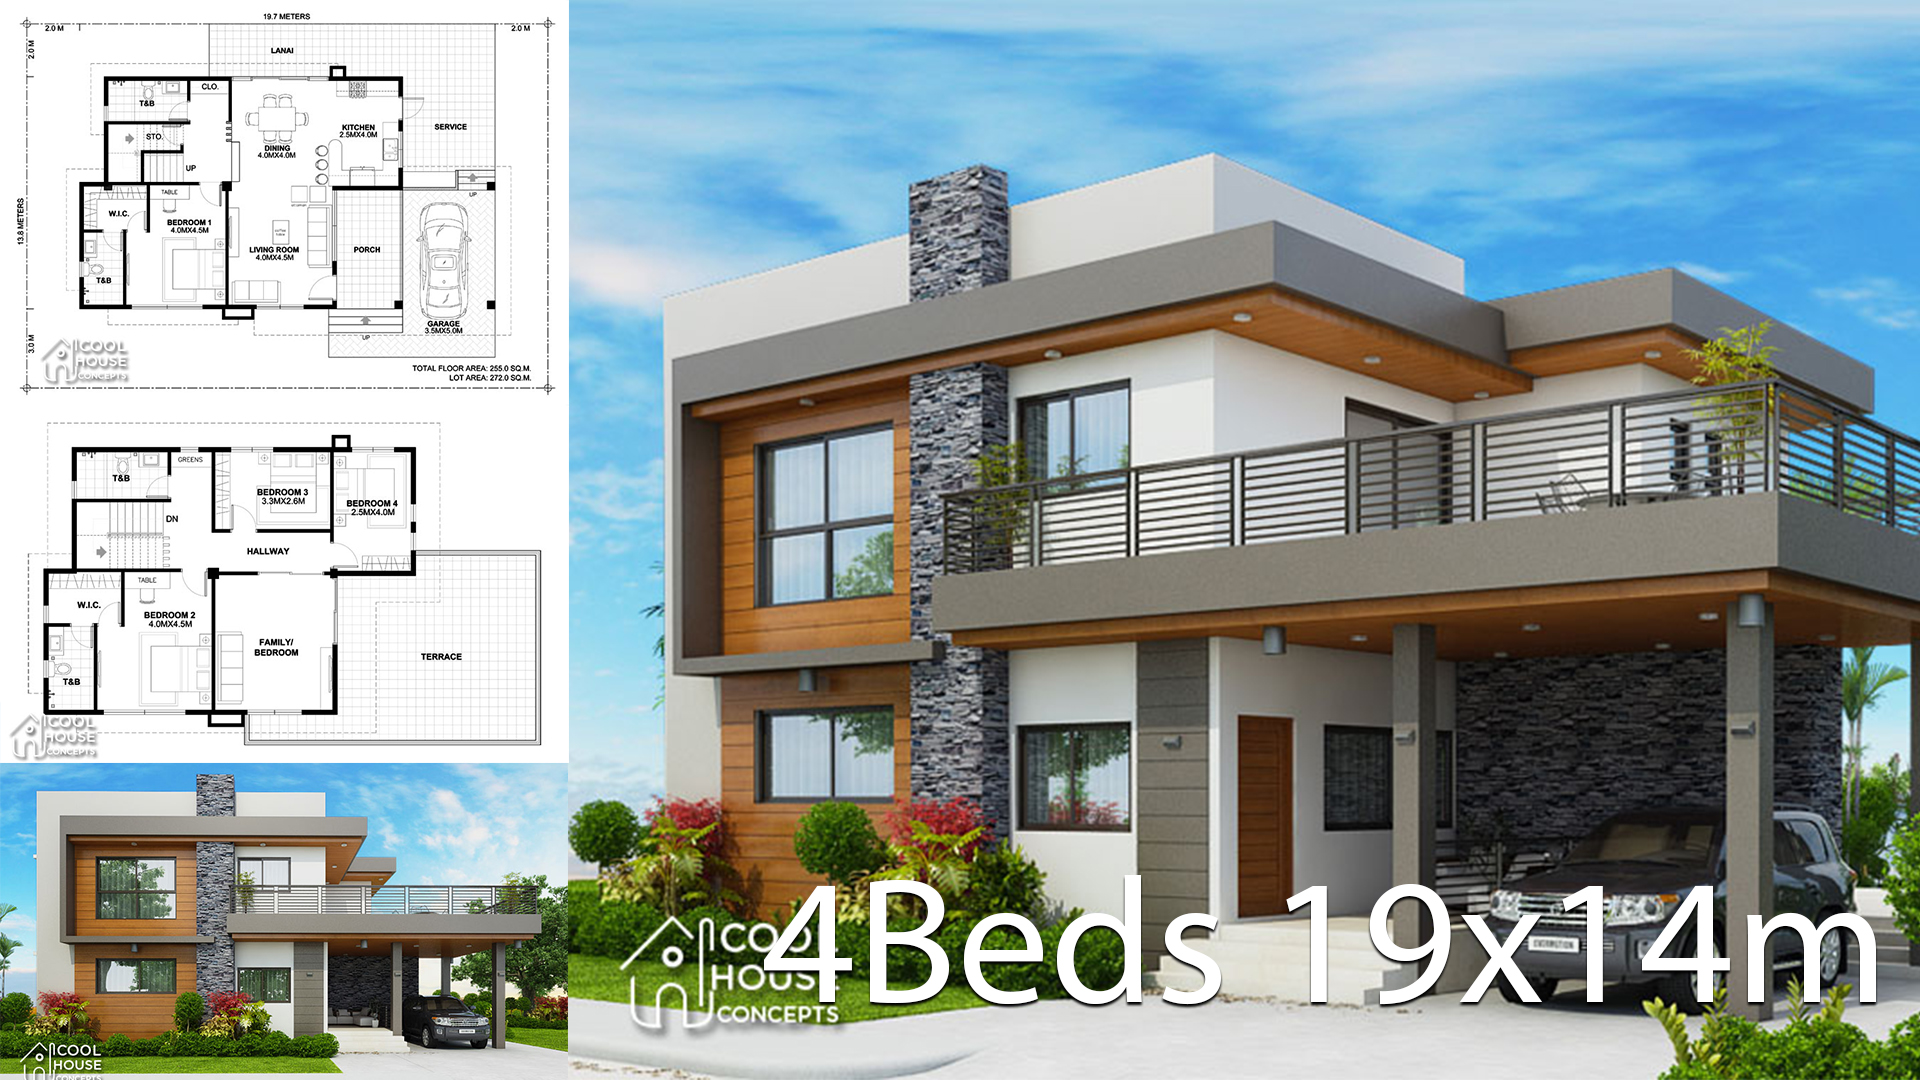 Home design plan 19x14m with 4 bedrooms - Home Ideas